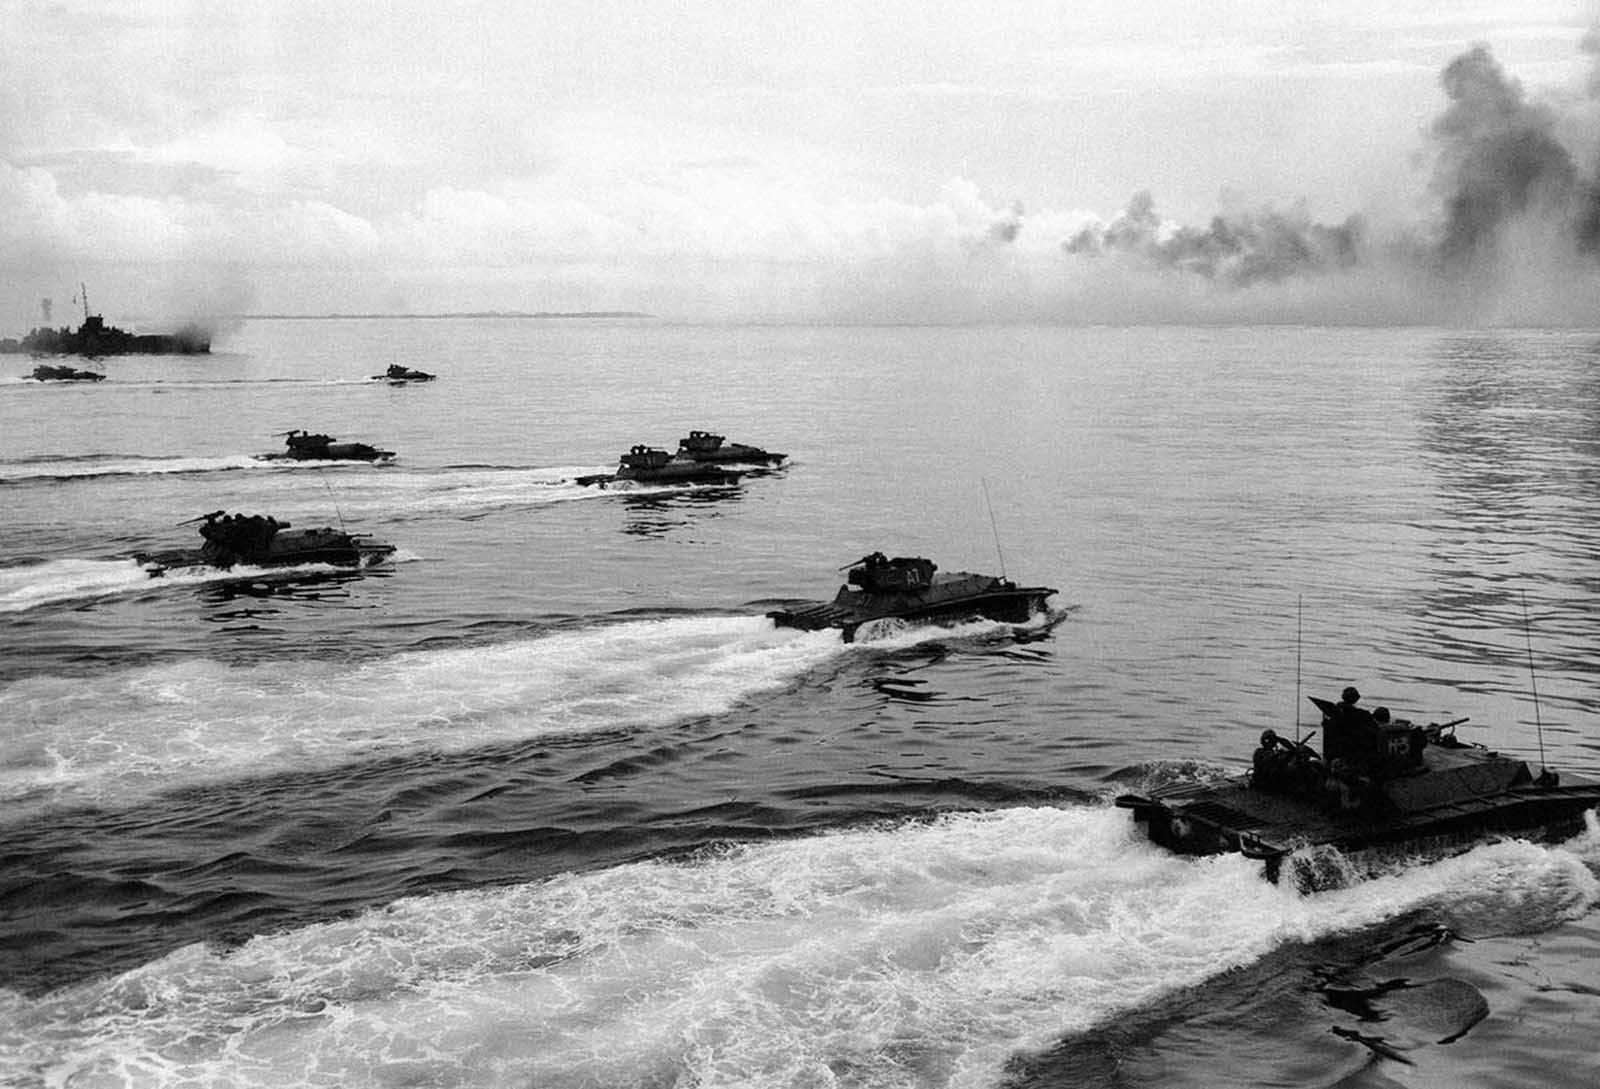 As a rocket-firing LCI lays down a barrage on the already obscured beach on Peleliu, a wave of Alligators (LVTs, or Landing Vehicle Tracked) churn toward the defenses of the strategic island September 15, 1944. The amphibious tanks with turret-housed cannons went in in after heavy air and sea bombardment. Army and Marine assault units stormed ashore on Peleliu on September 15, and it was announced that organized resistance was almost entirely ended on September 27.